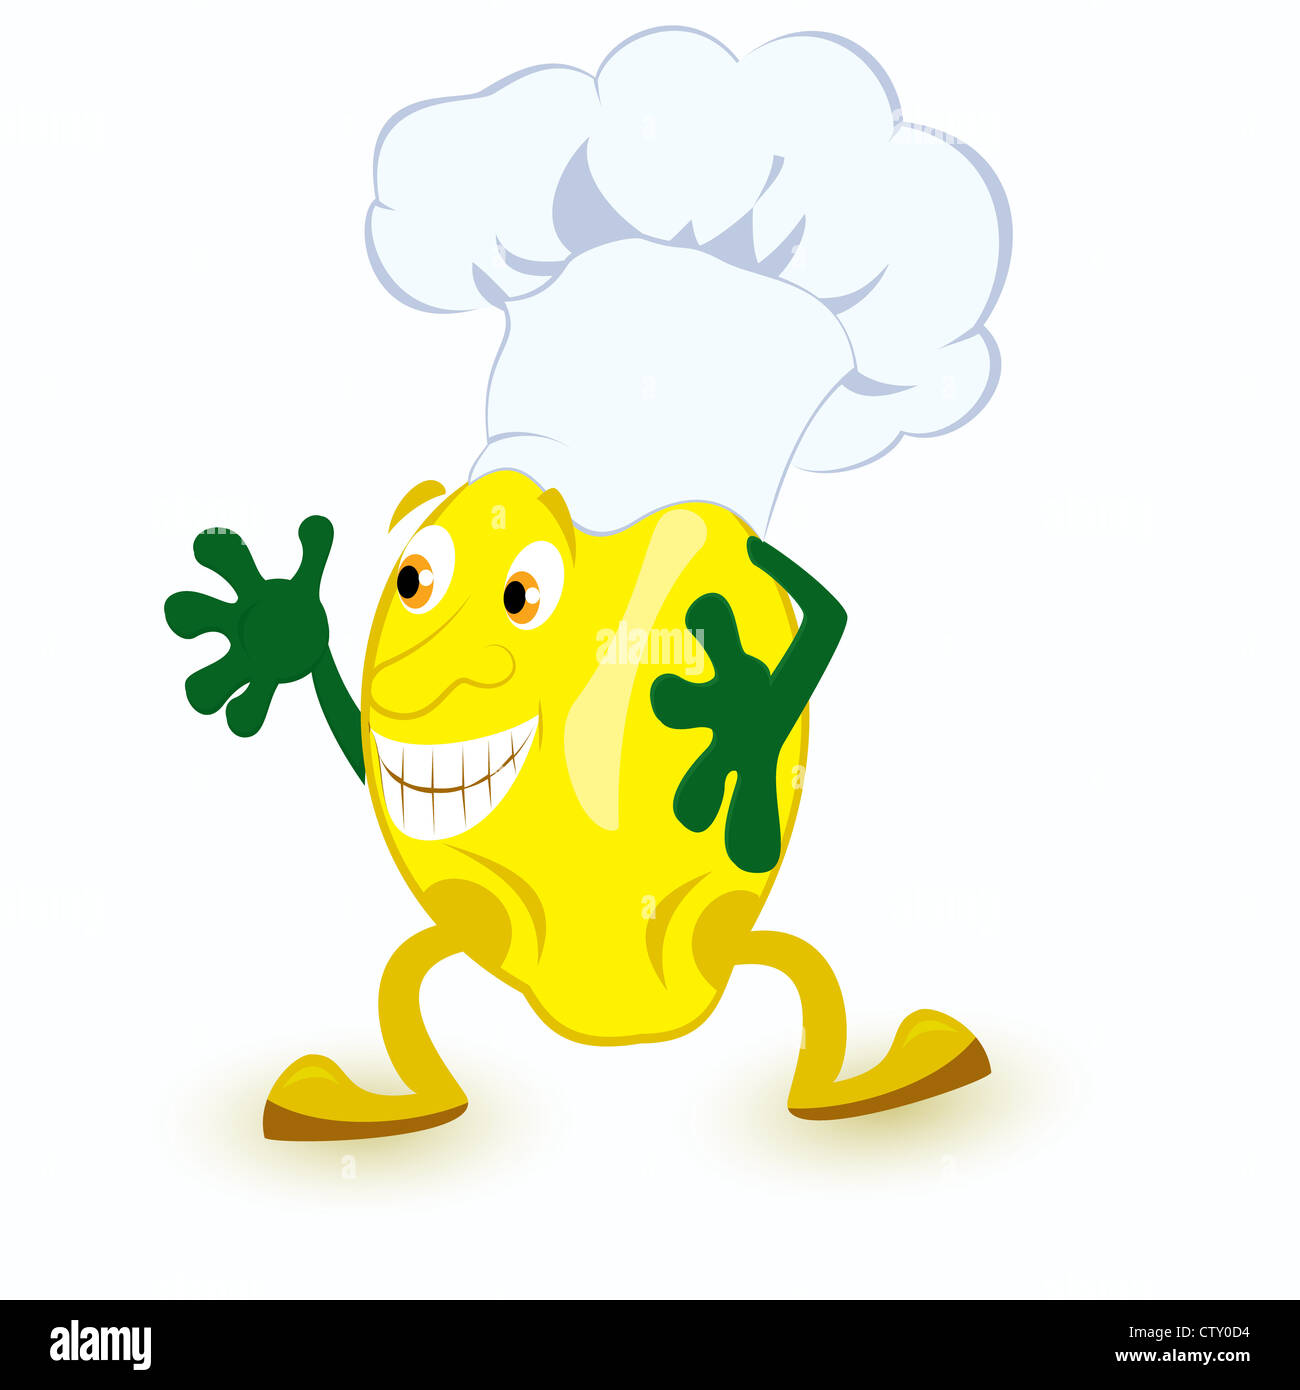 Personnage de citron en chef hat vector illustration Photo Stock